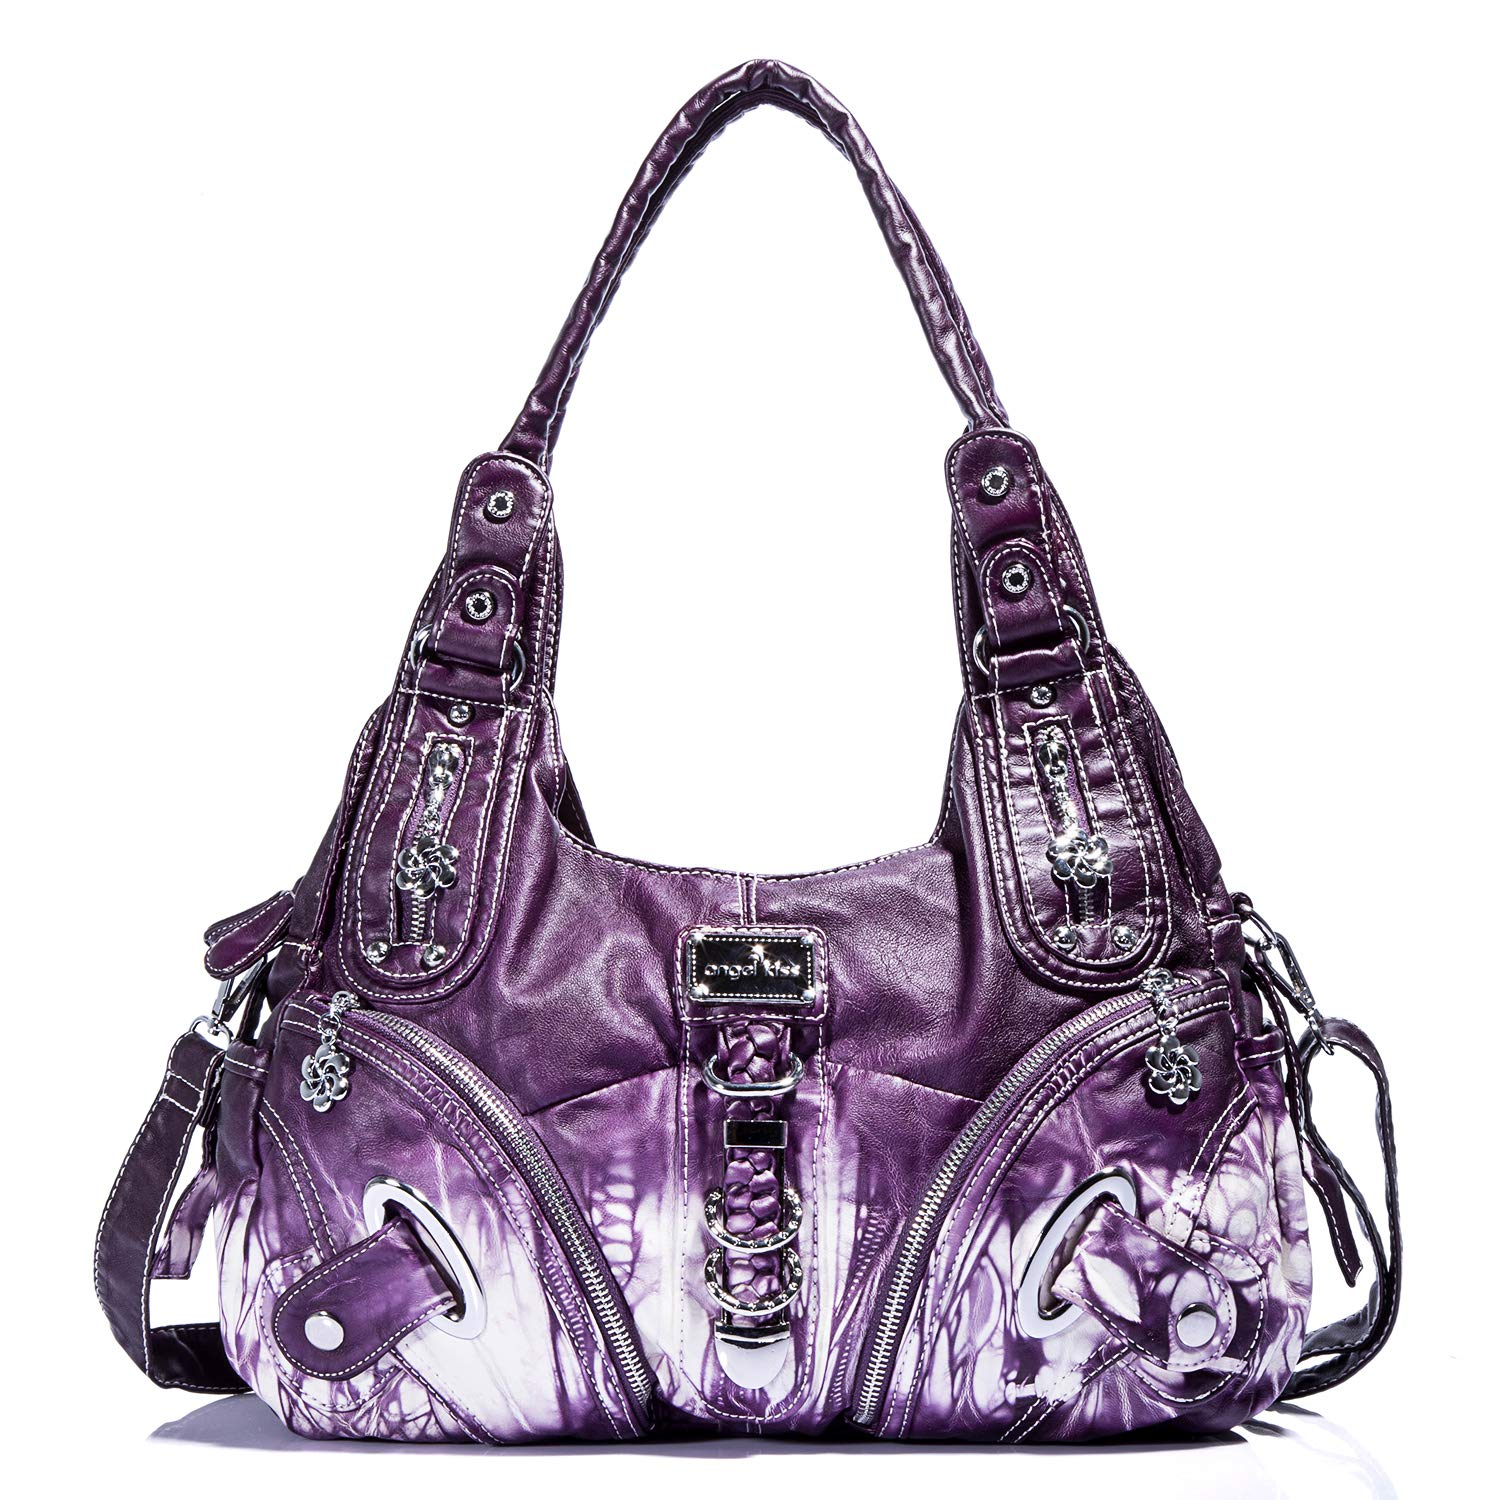 Handbag Hobo Women Bag Roomy Multiple Pockets Street ladies' Shoulder Bag Fashion PU Tote Satchel Bag for Women (11282Z purple)